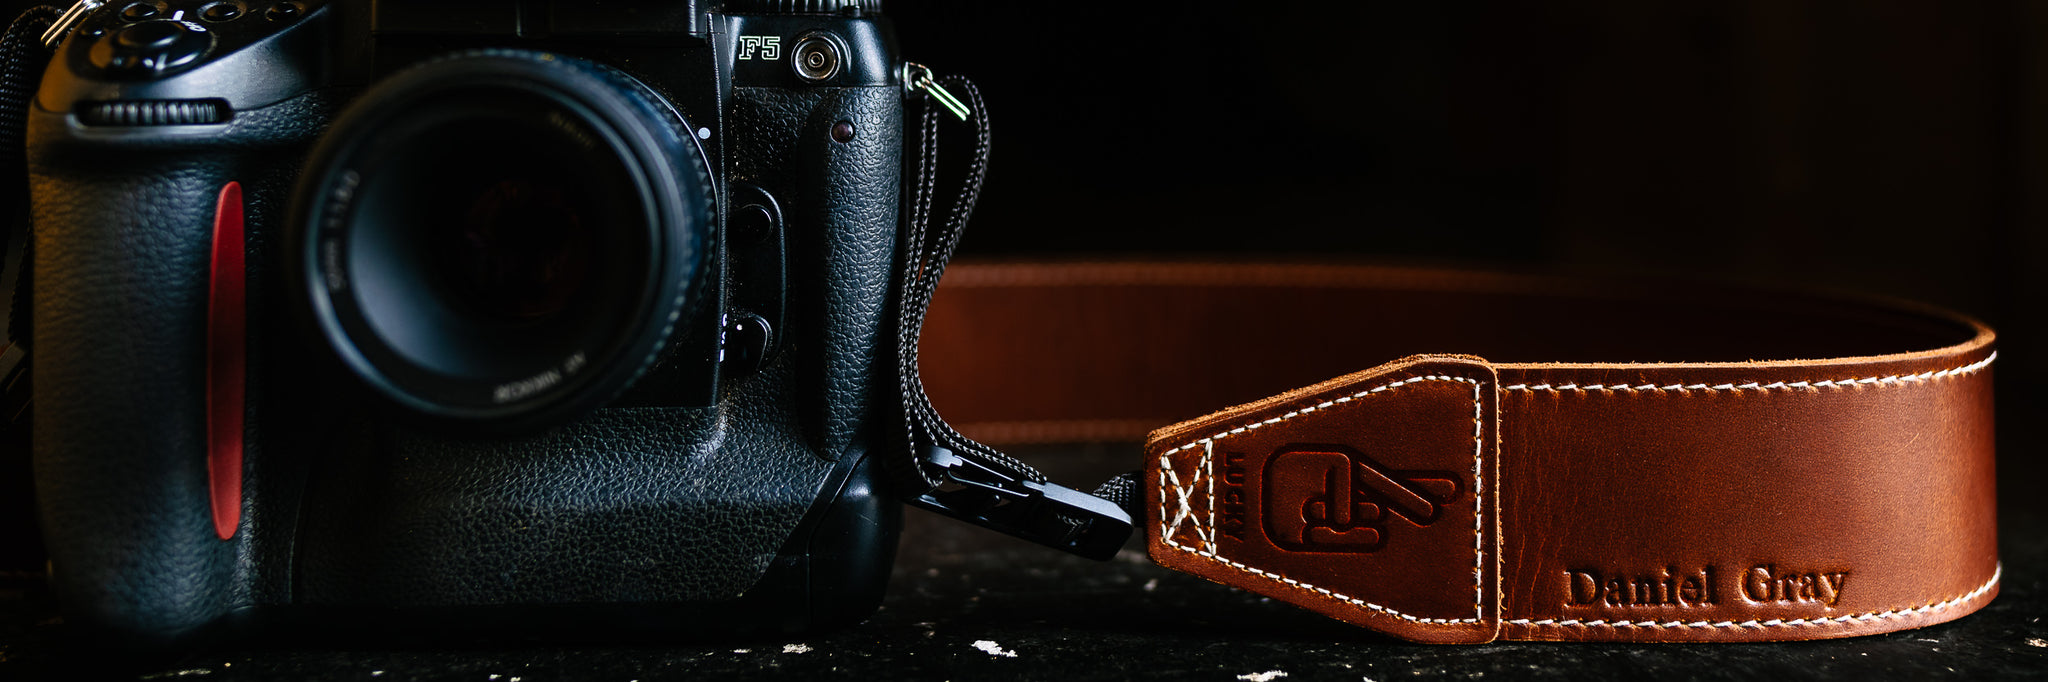 Lucky Camera Straps Personalised Leather Embossing for Photography Gift